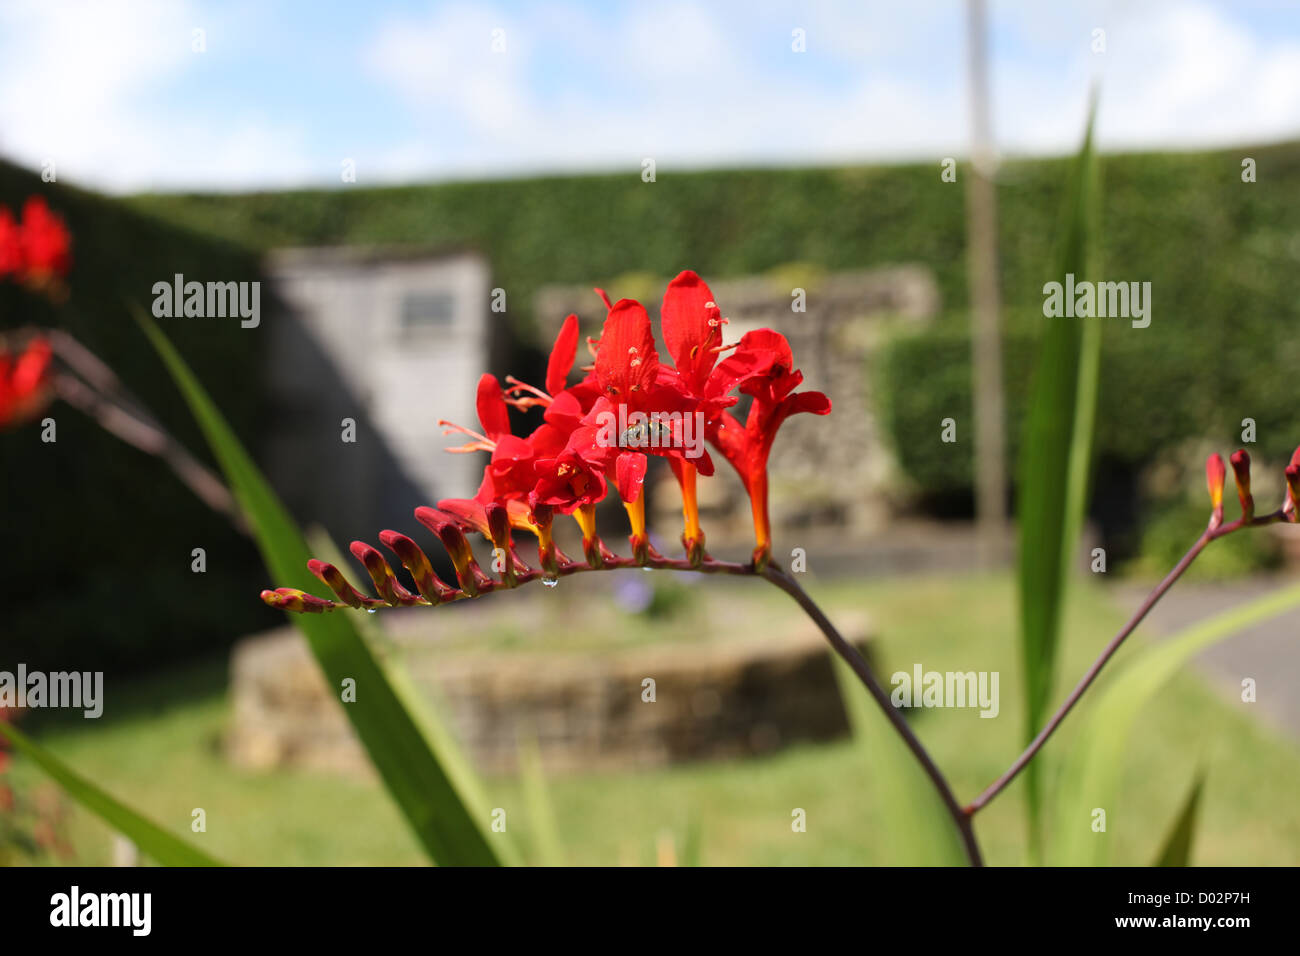 A small genus of flowering plants in the iris family ...